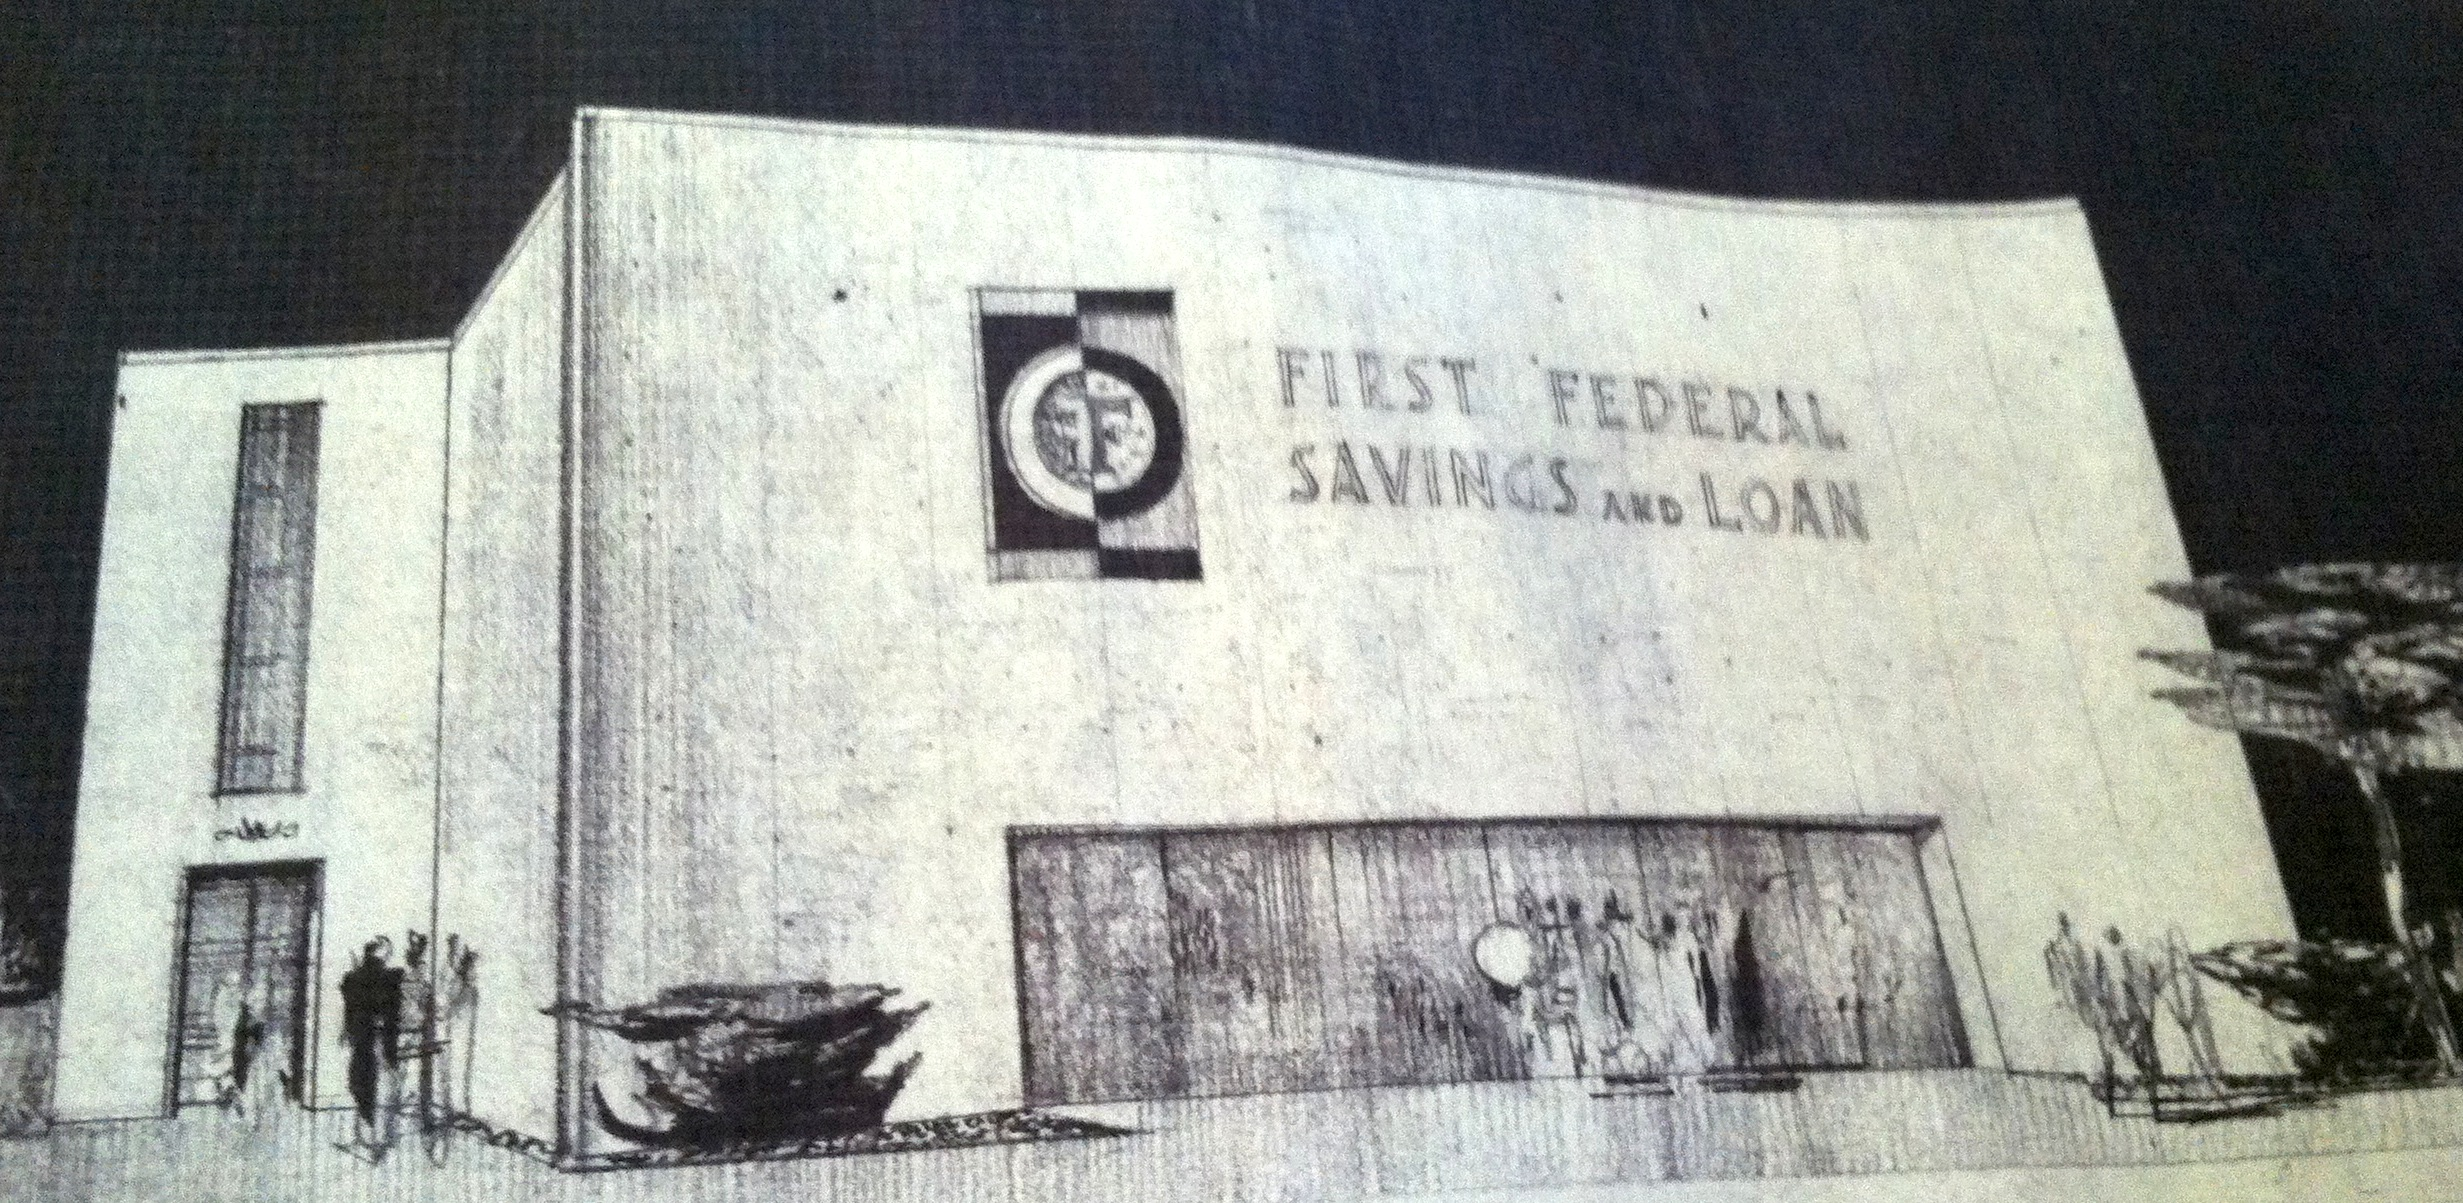 S. David Underwood, sketch for First Federal Savings and Loan, n.d., S. David Underwood Archive.